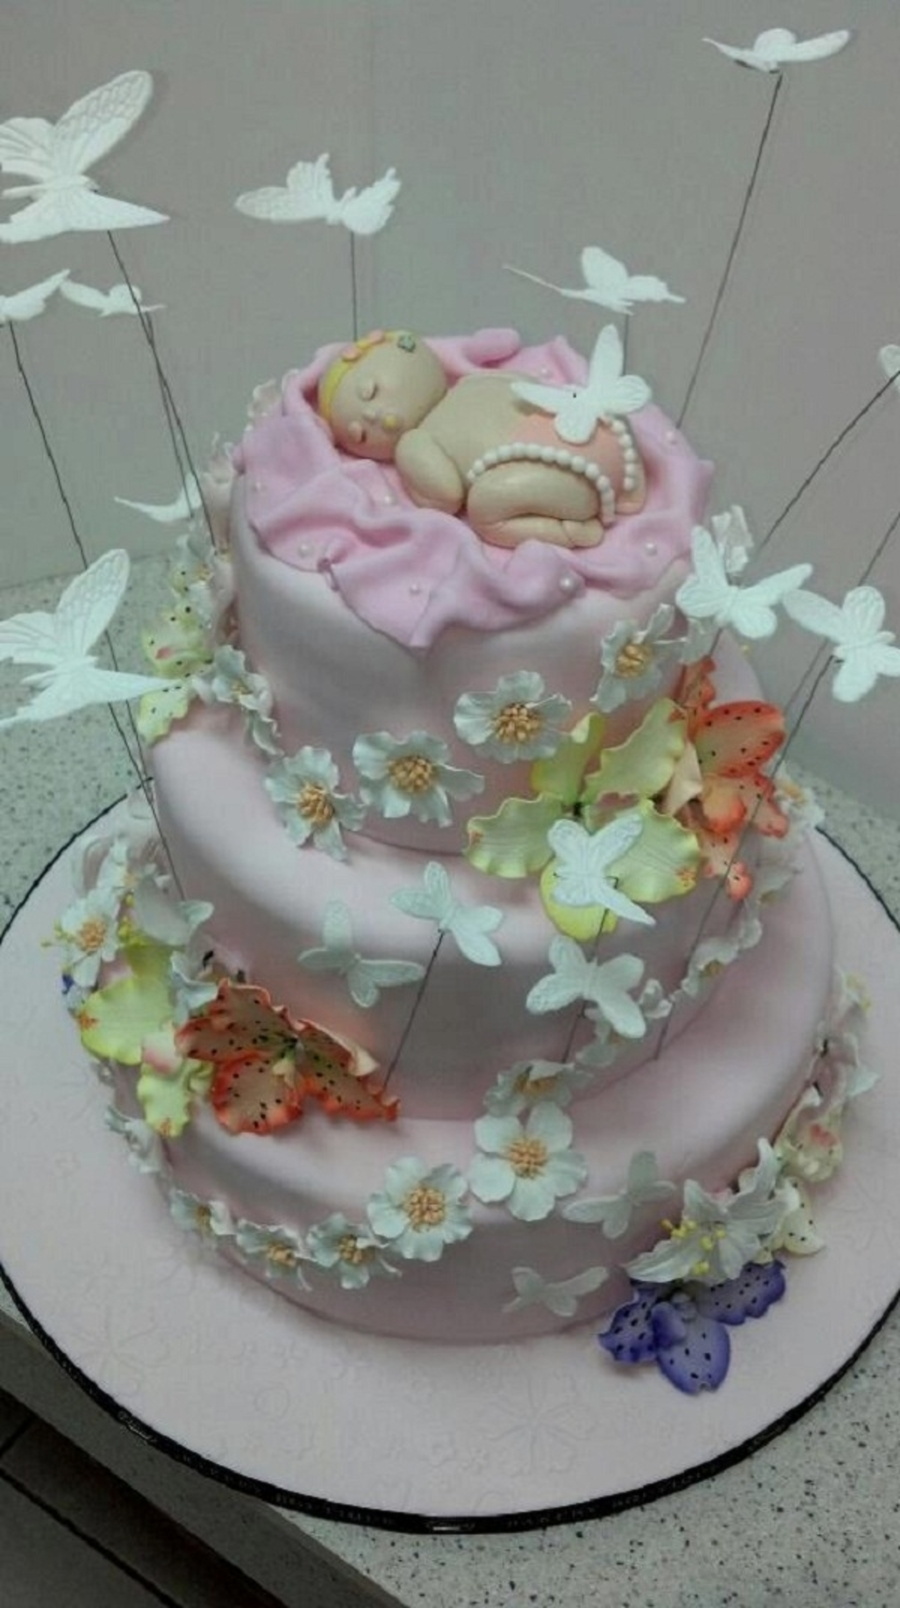 Custom Baby With Butterflies Cake on Cake Central